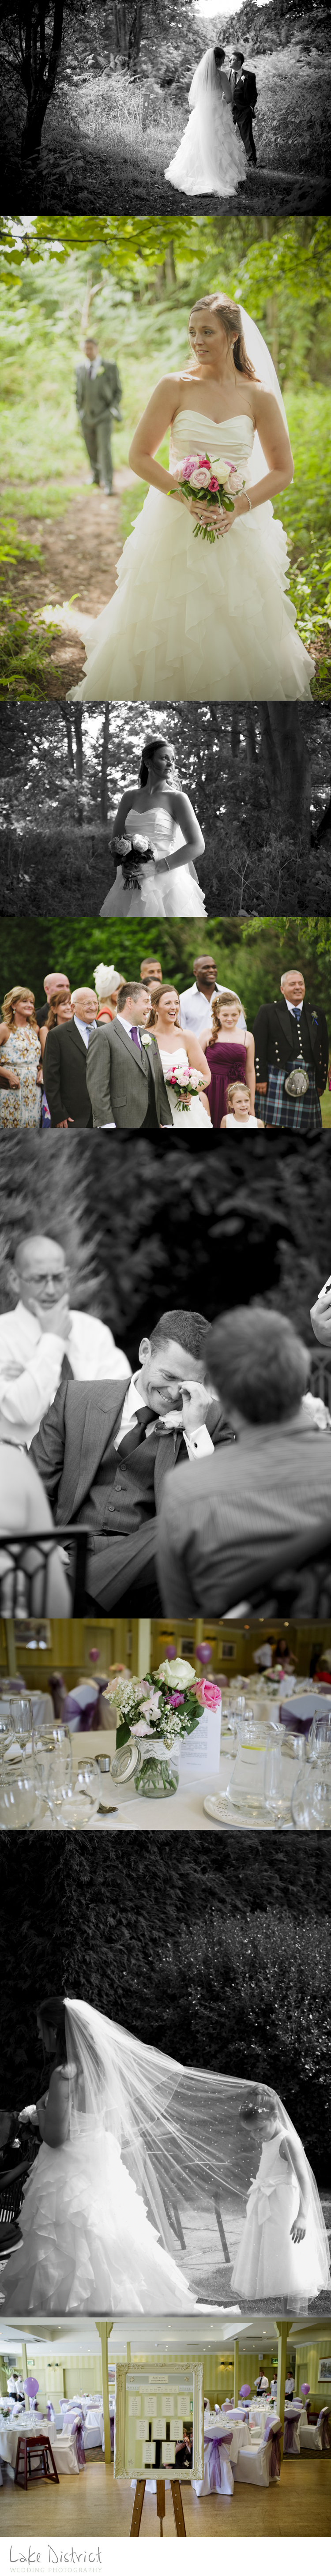 Weddings Photography in the Eden Valley